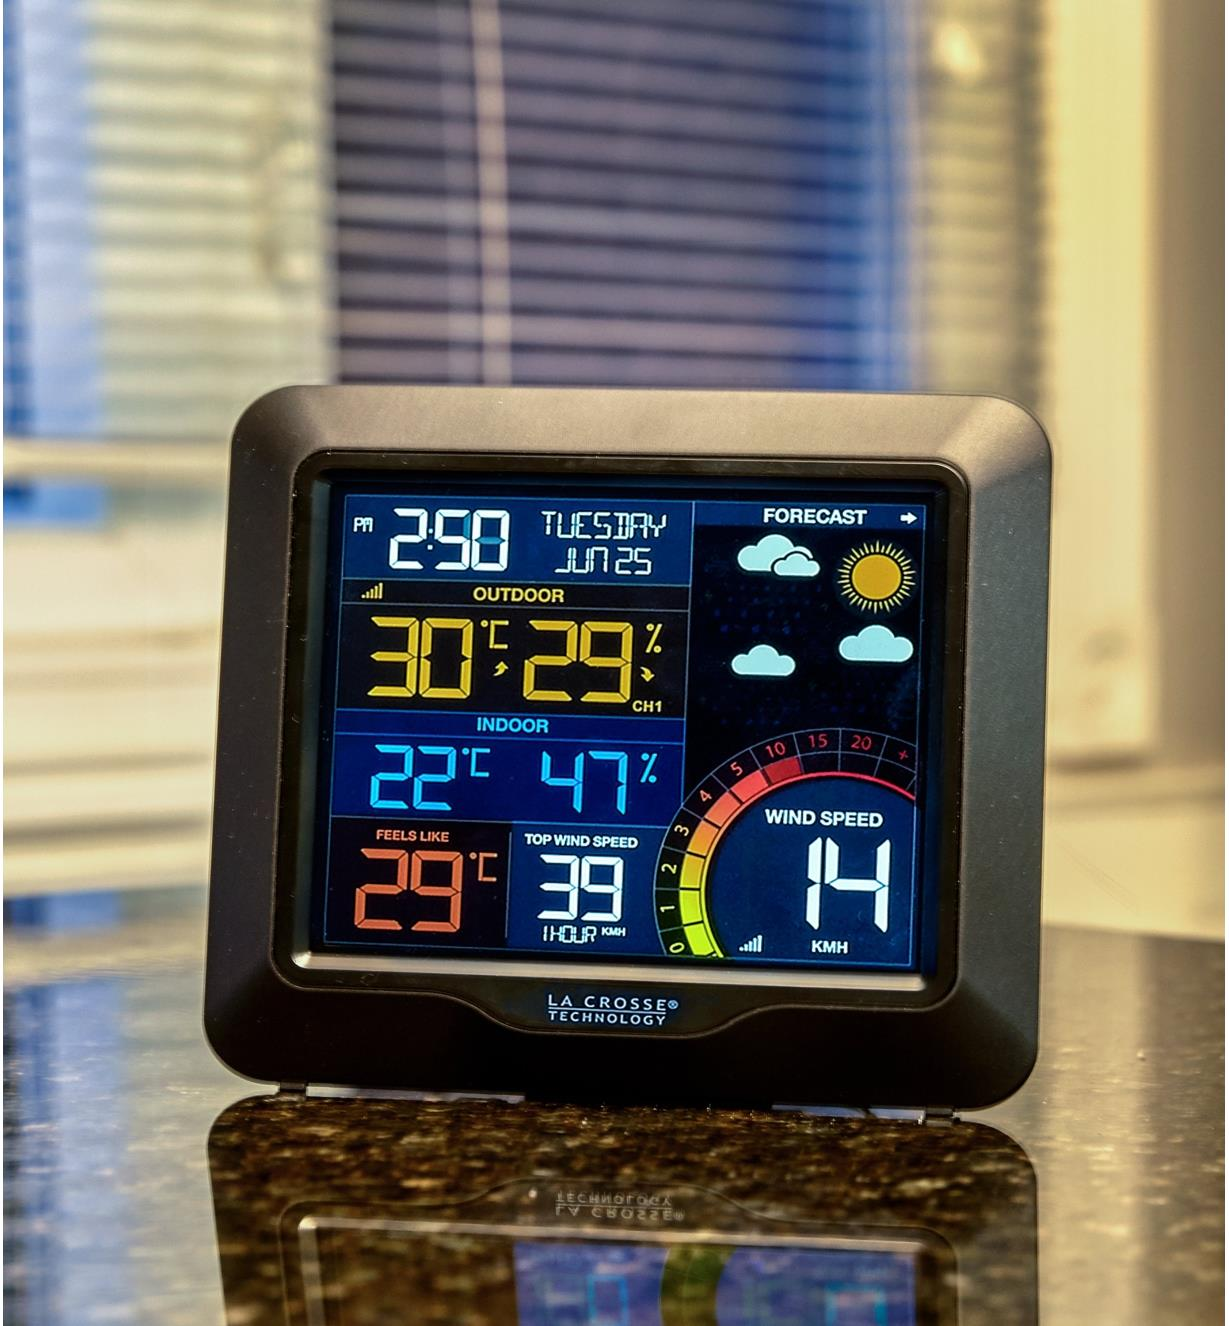 LCD screen of the wireless weather station displays date, time, forecast icons, temperature and humidity in celsius and wind speed in kilometres per hour